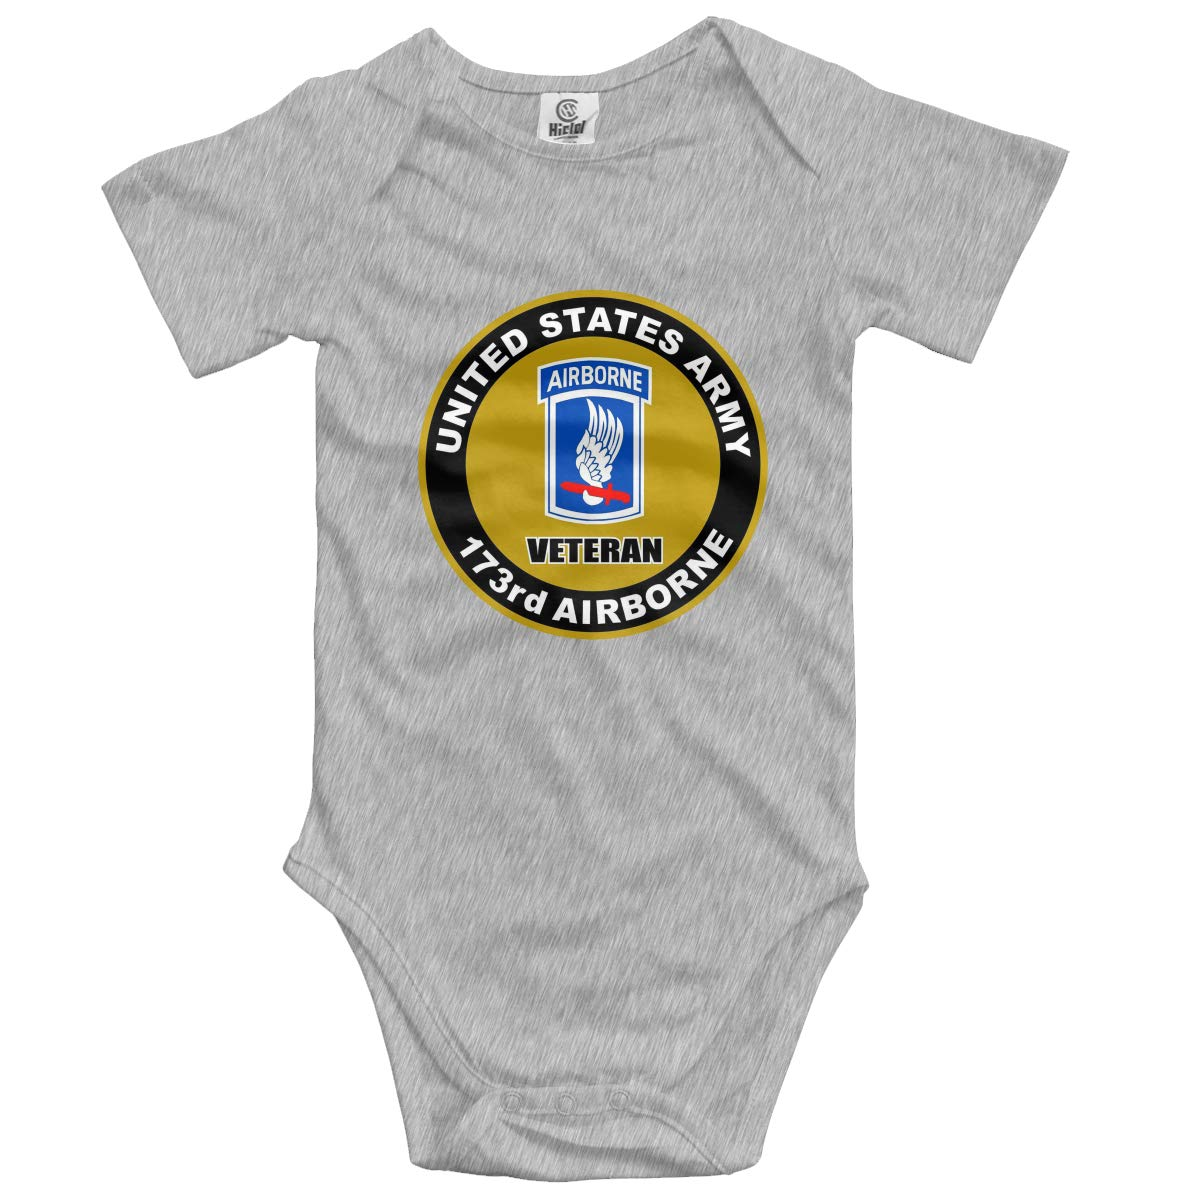 173rd Airborne Brigade Infant Baby Romper Summer Short Sleeve Jumpsuit Pround Gift Gray